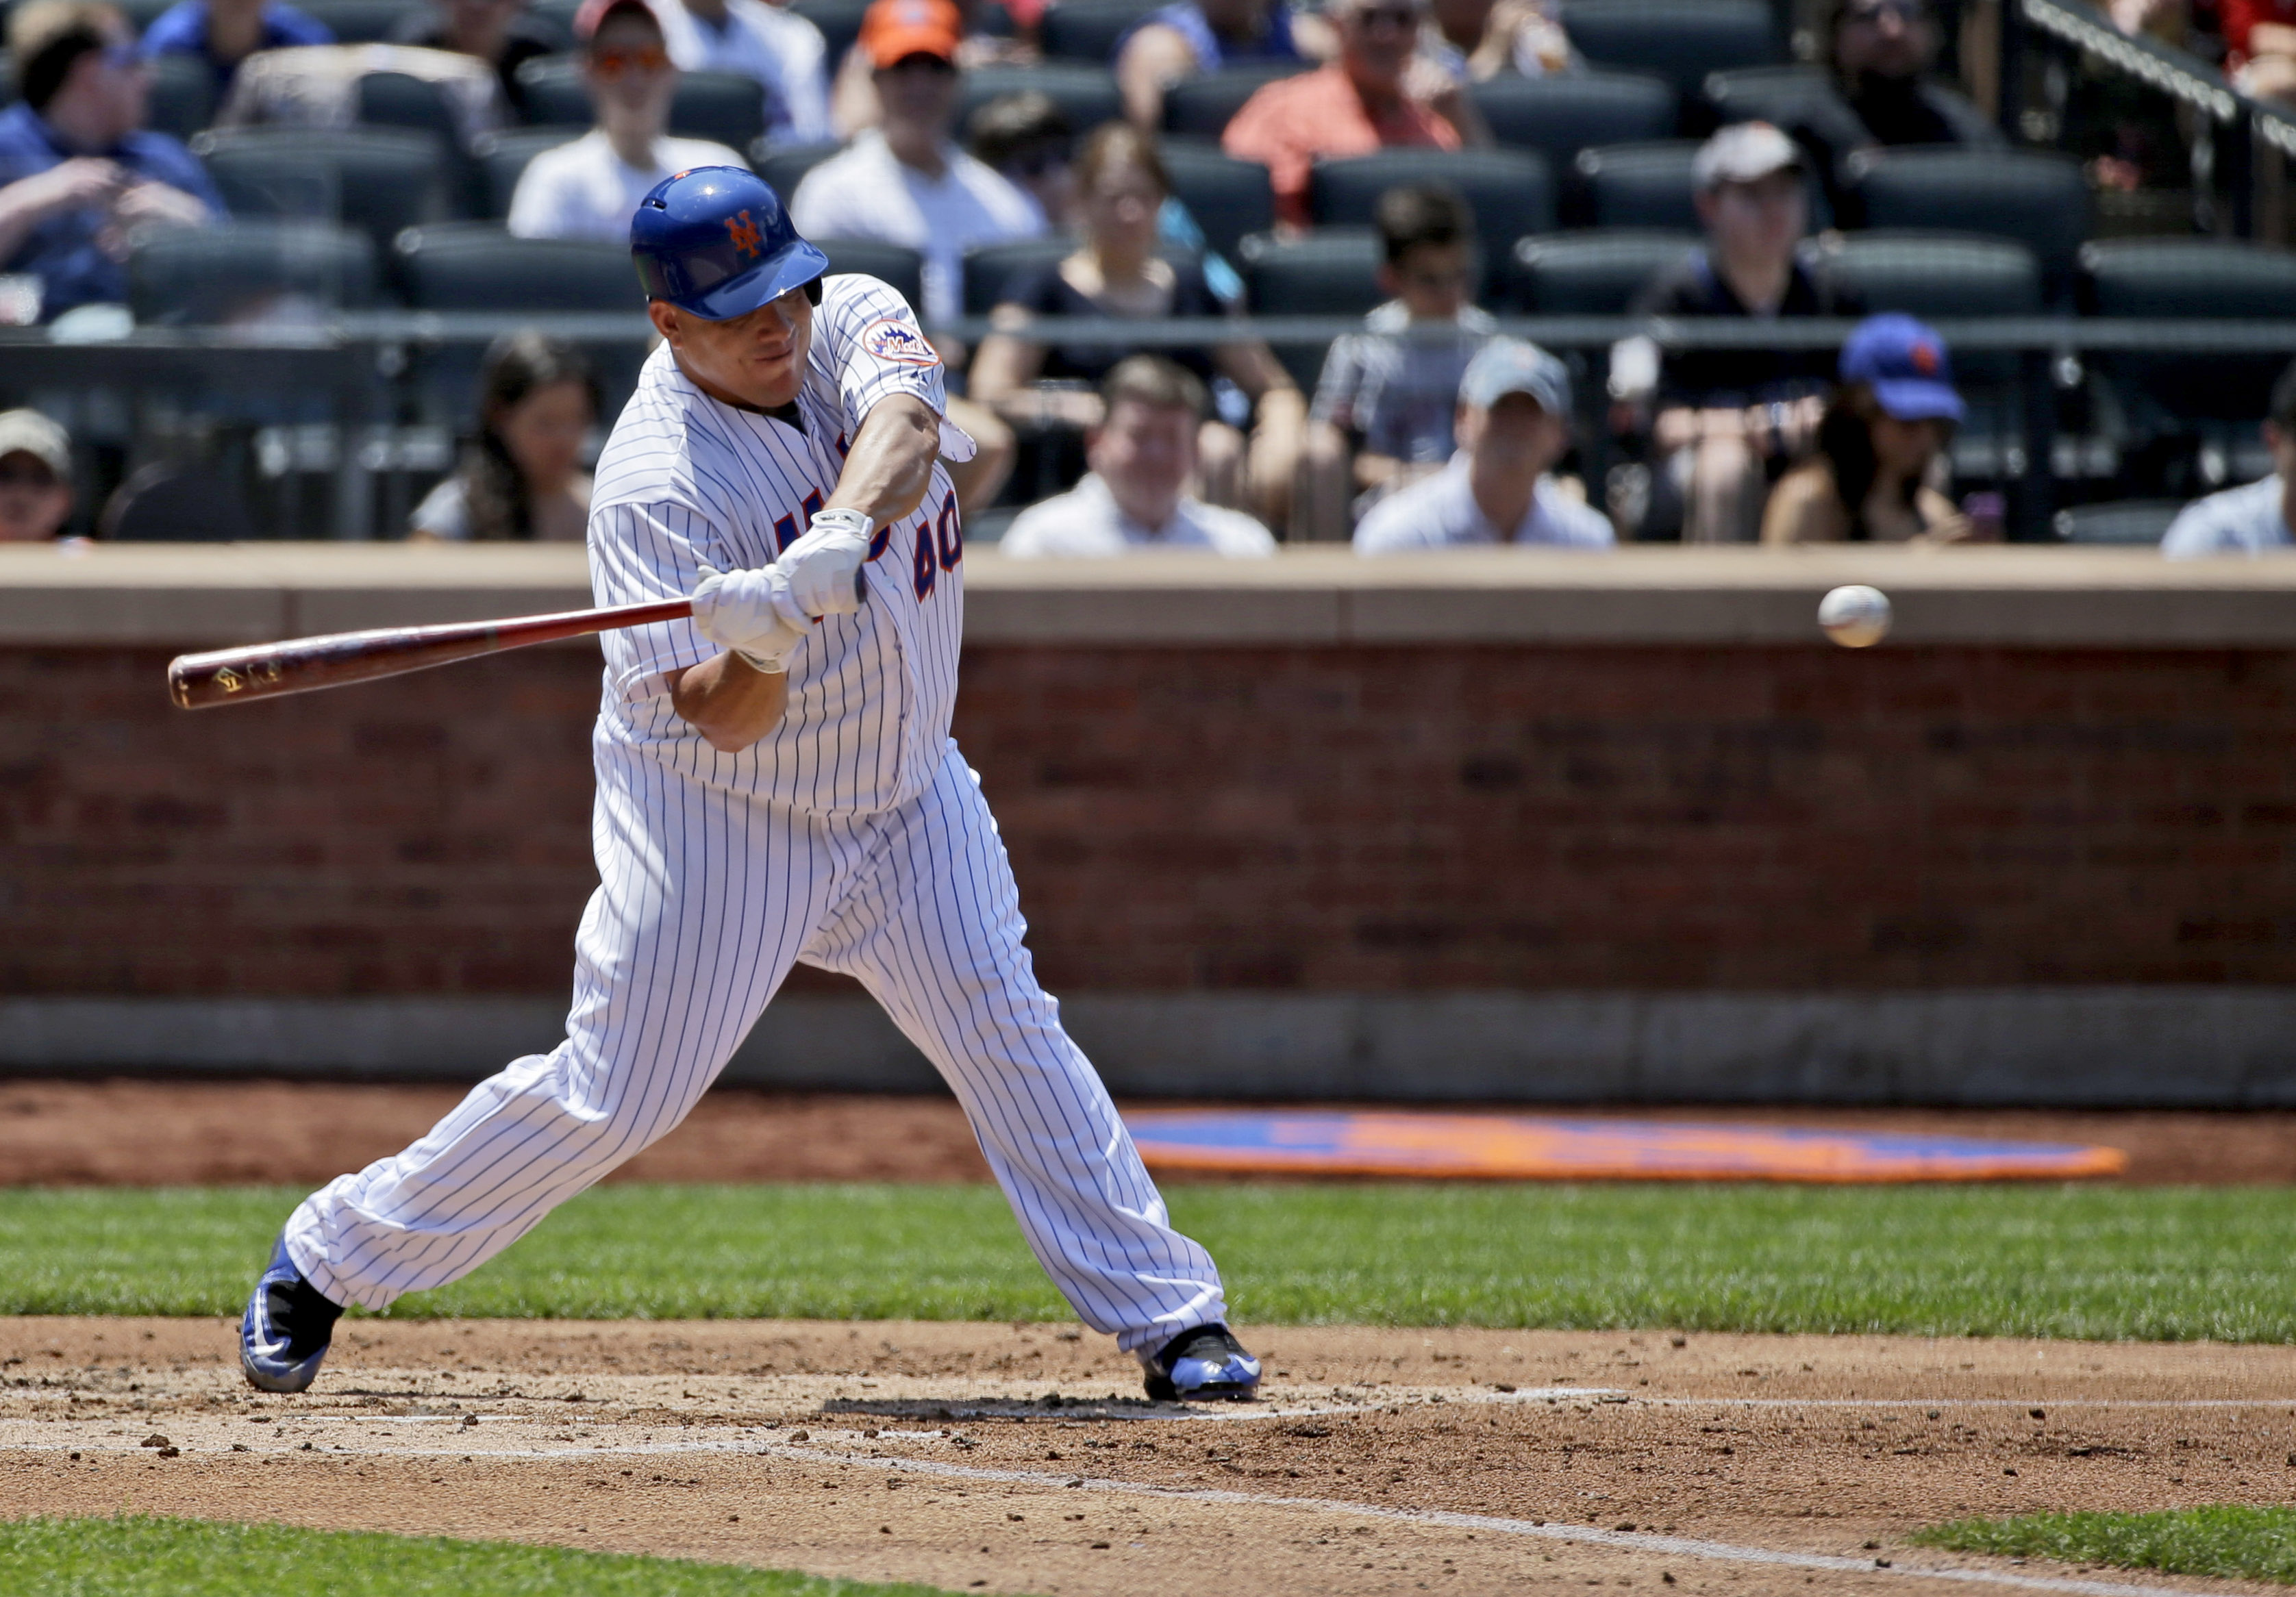 New York Mets' Bartolo Colon hits an RBI-double during the second inning of the baseball game against the Miami Marlins, Sunday, May 31, 2015, in New York. (AP Photo/Seth Wenig)